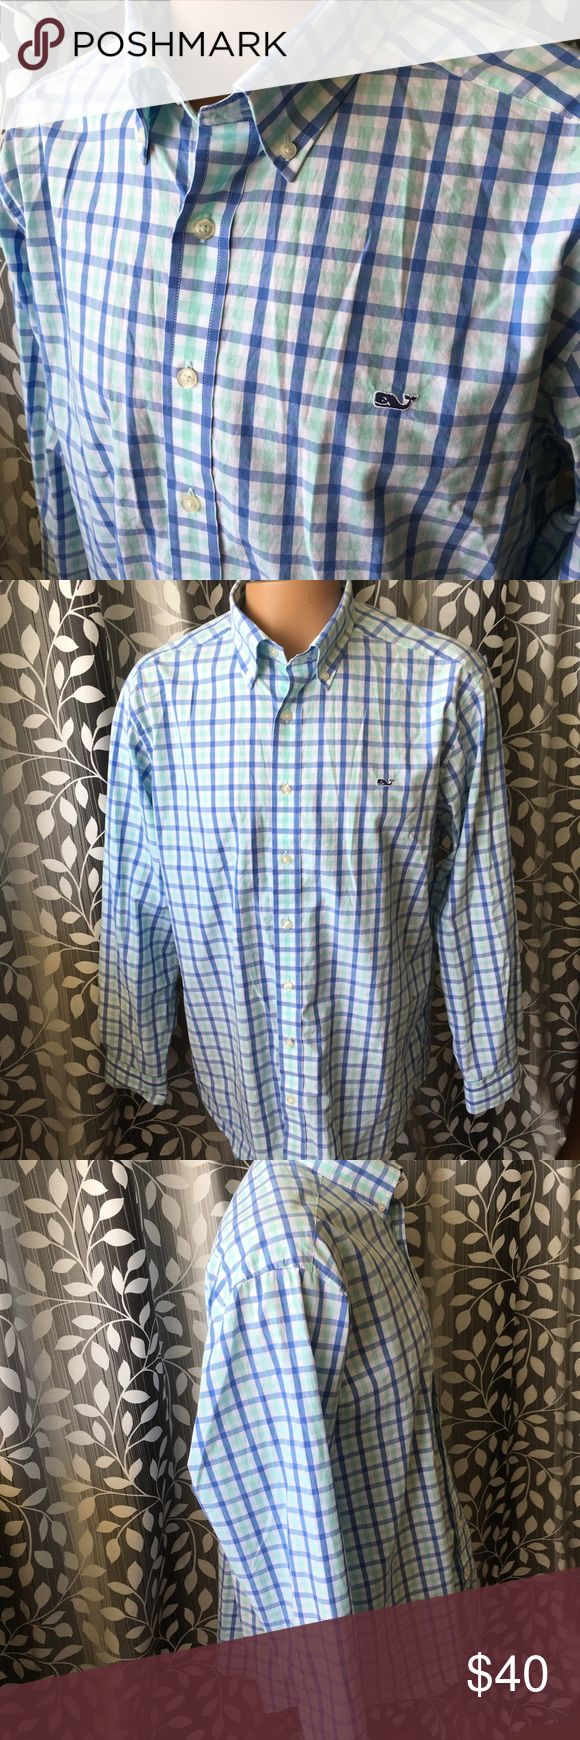 """Vineyard Vines long sleeve whale shirt slim fit XL Great Vineyard Vines whale shirt! Cool Plaids with button down collar. Size XL slim fit. Armpit to armpit- 24.5"""" shoulder to shoulder- 20.5"""" neck to bottom tail- 31"""". Two tiny pin size hole on upper backside. Please see photo. Thanks! Vineyard Vines Shirts Casual Button Down Shirts"""